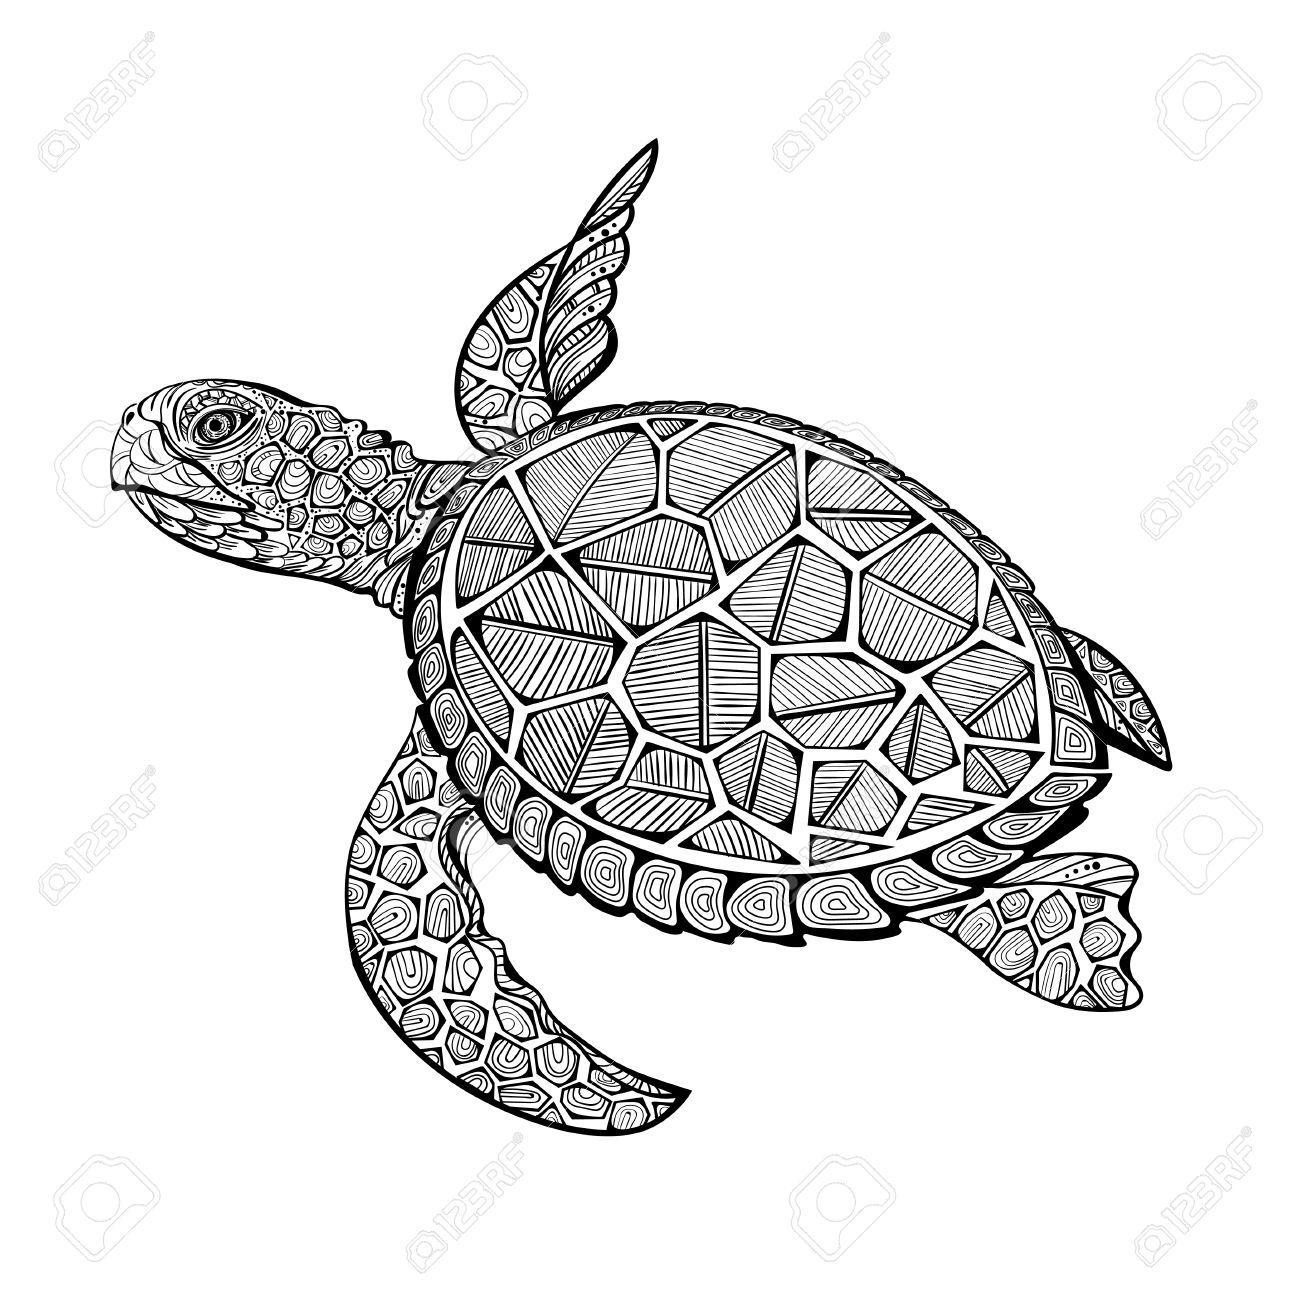 Illustration Of Sea Turtle For Coloring Book Pages For Kids And